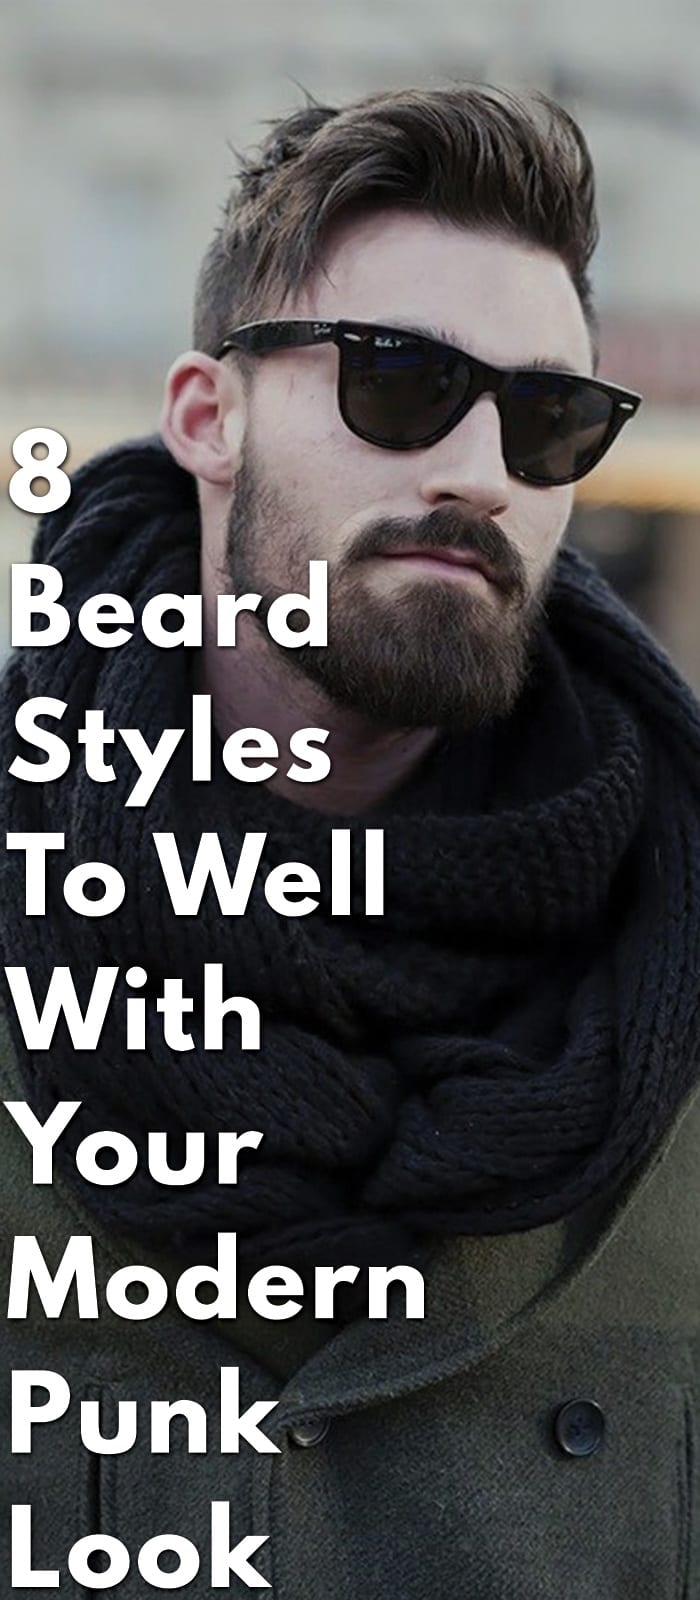 8-Beard-Styles-To-Well-With-Your-Modern-Punk-Look.